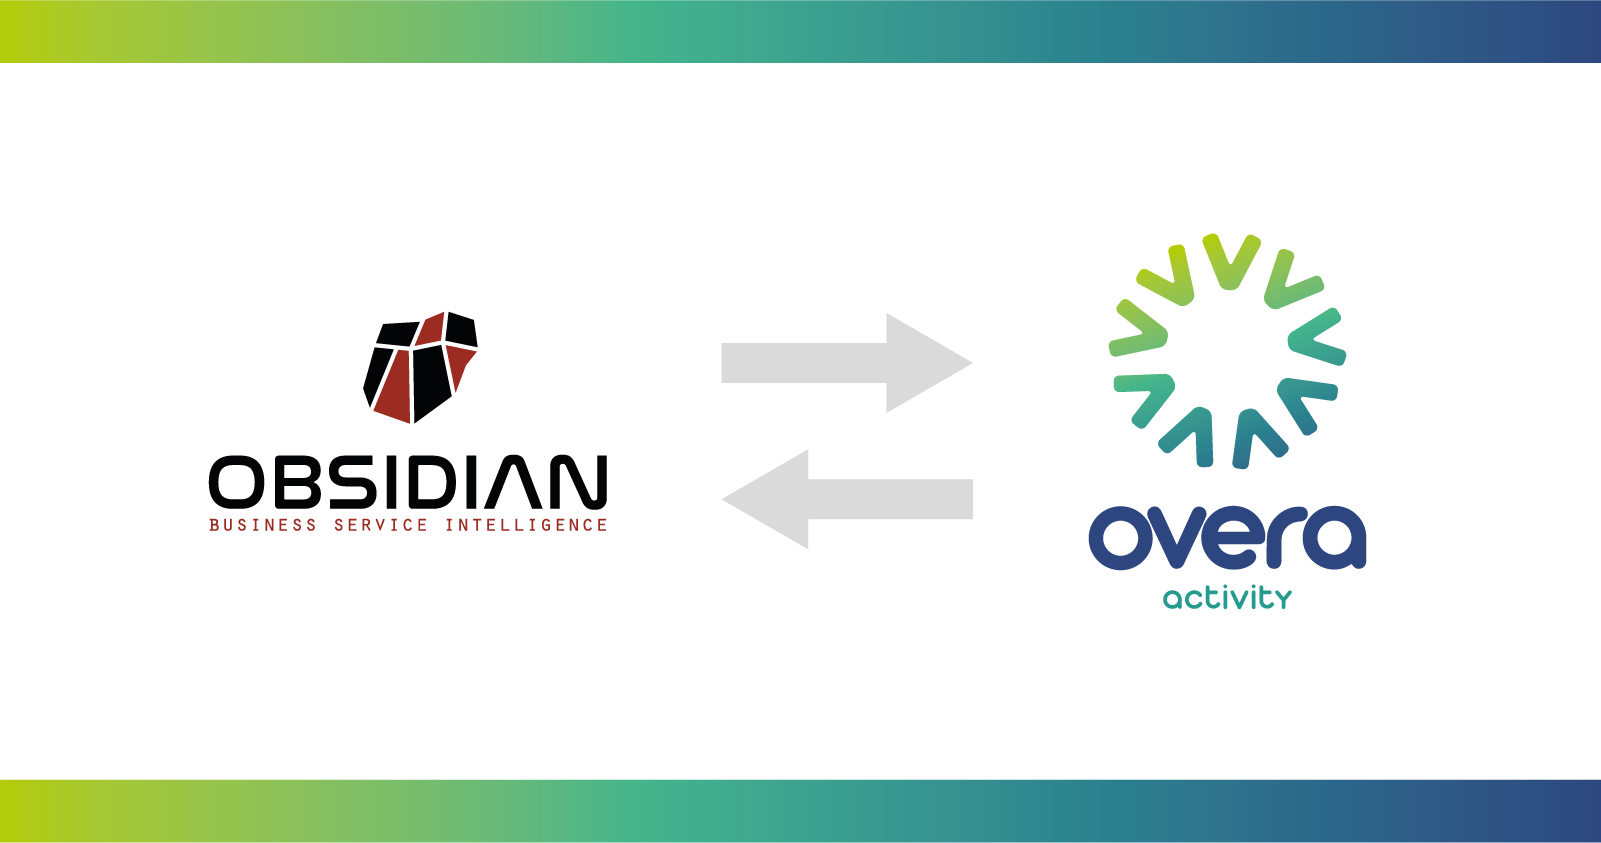 Integration of Obsidian with Overa Activity